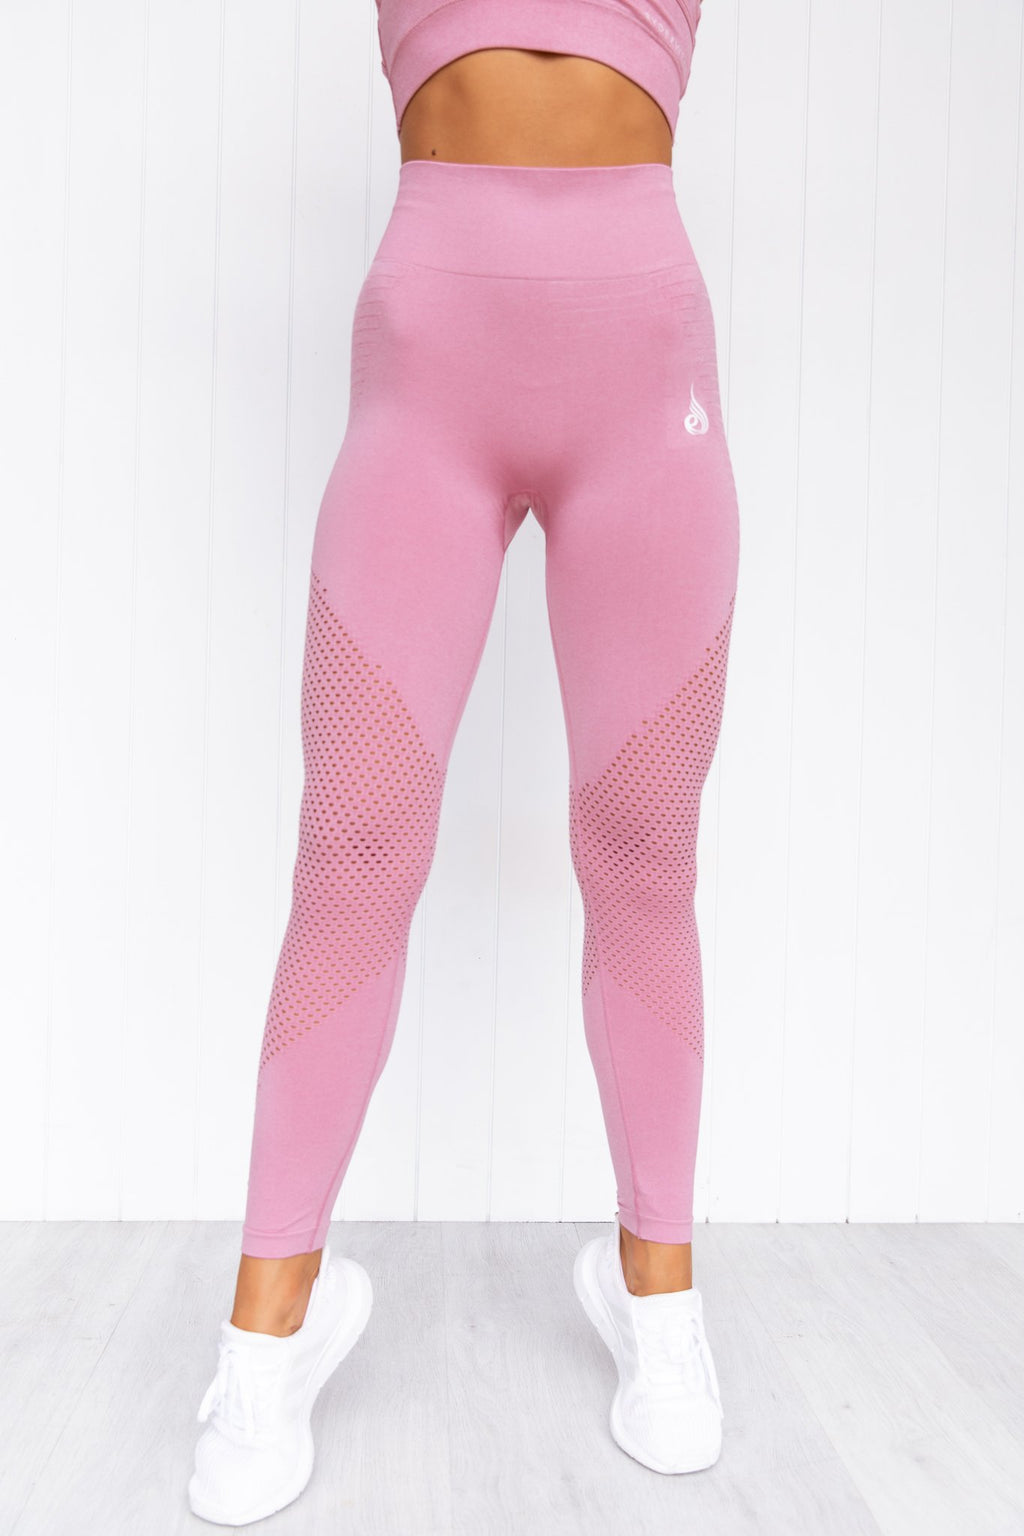 Geo Seamless High Waisted Leggings - Pink - PURE DASH